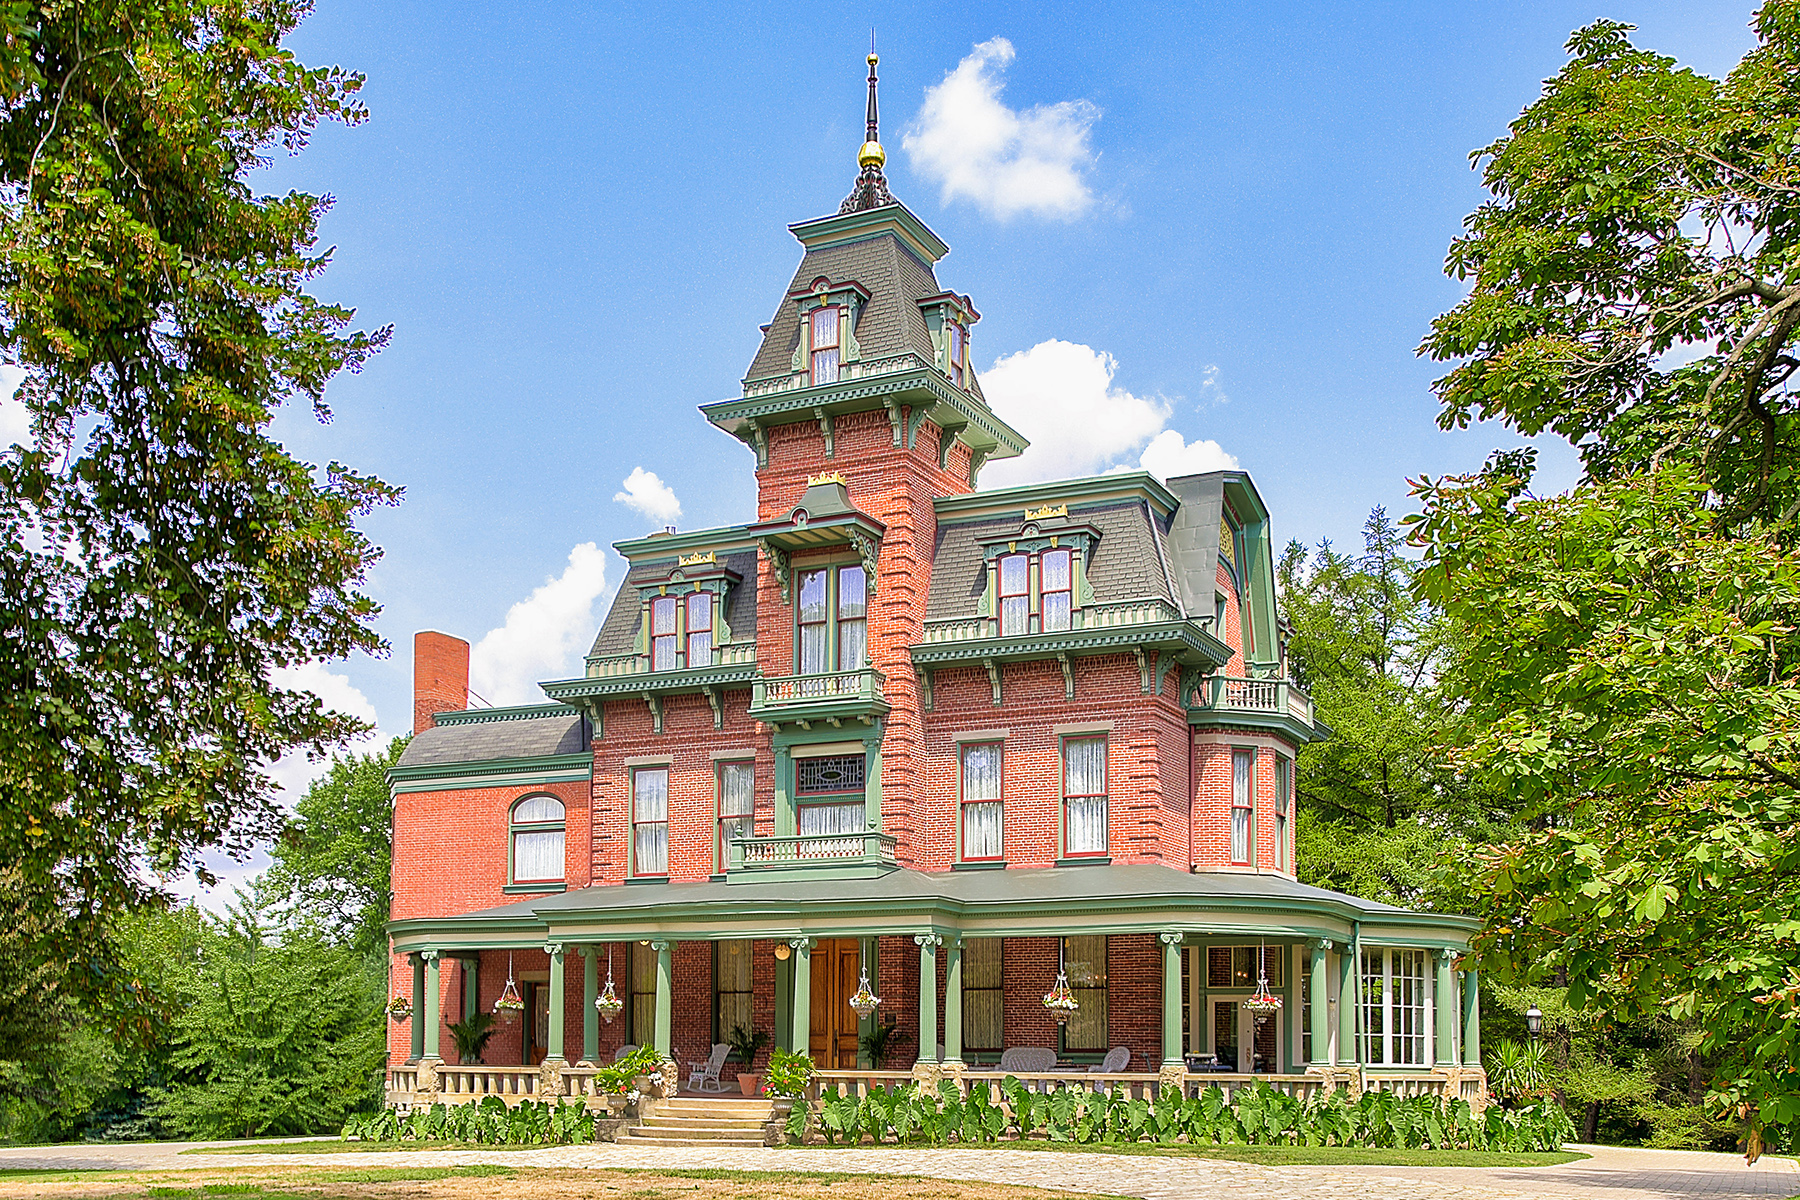 A large red brick Victorian house with green trim that's surrounded by green trees. The house features a large wrap-around porch and a turret in the center.